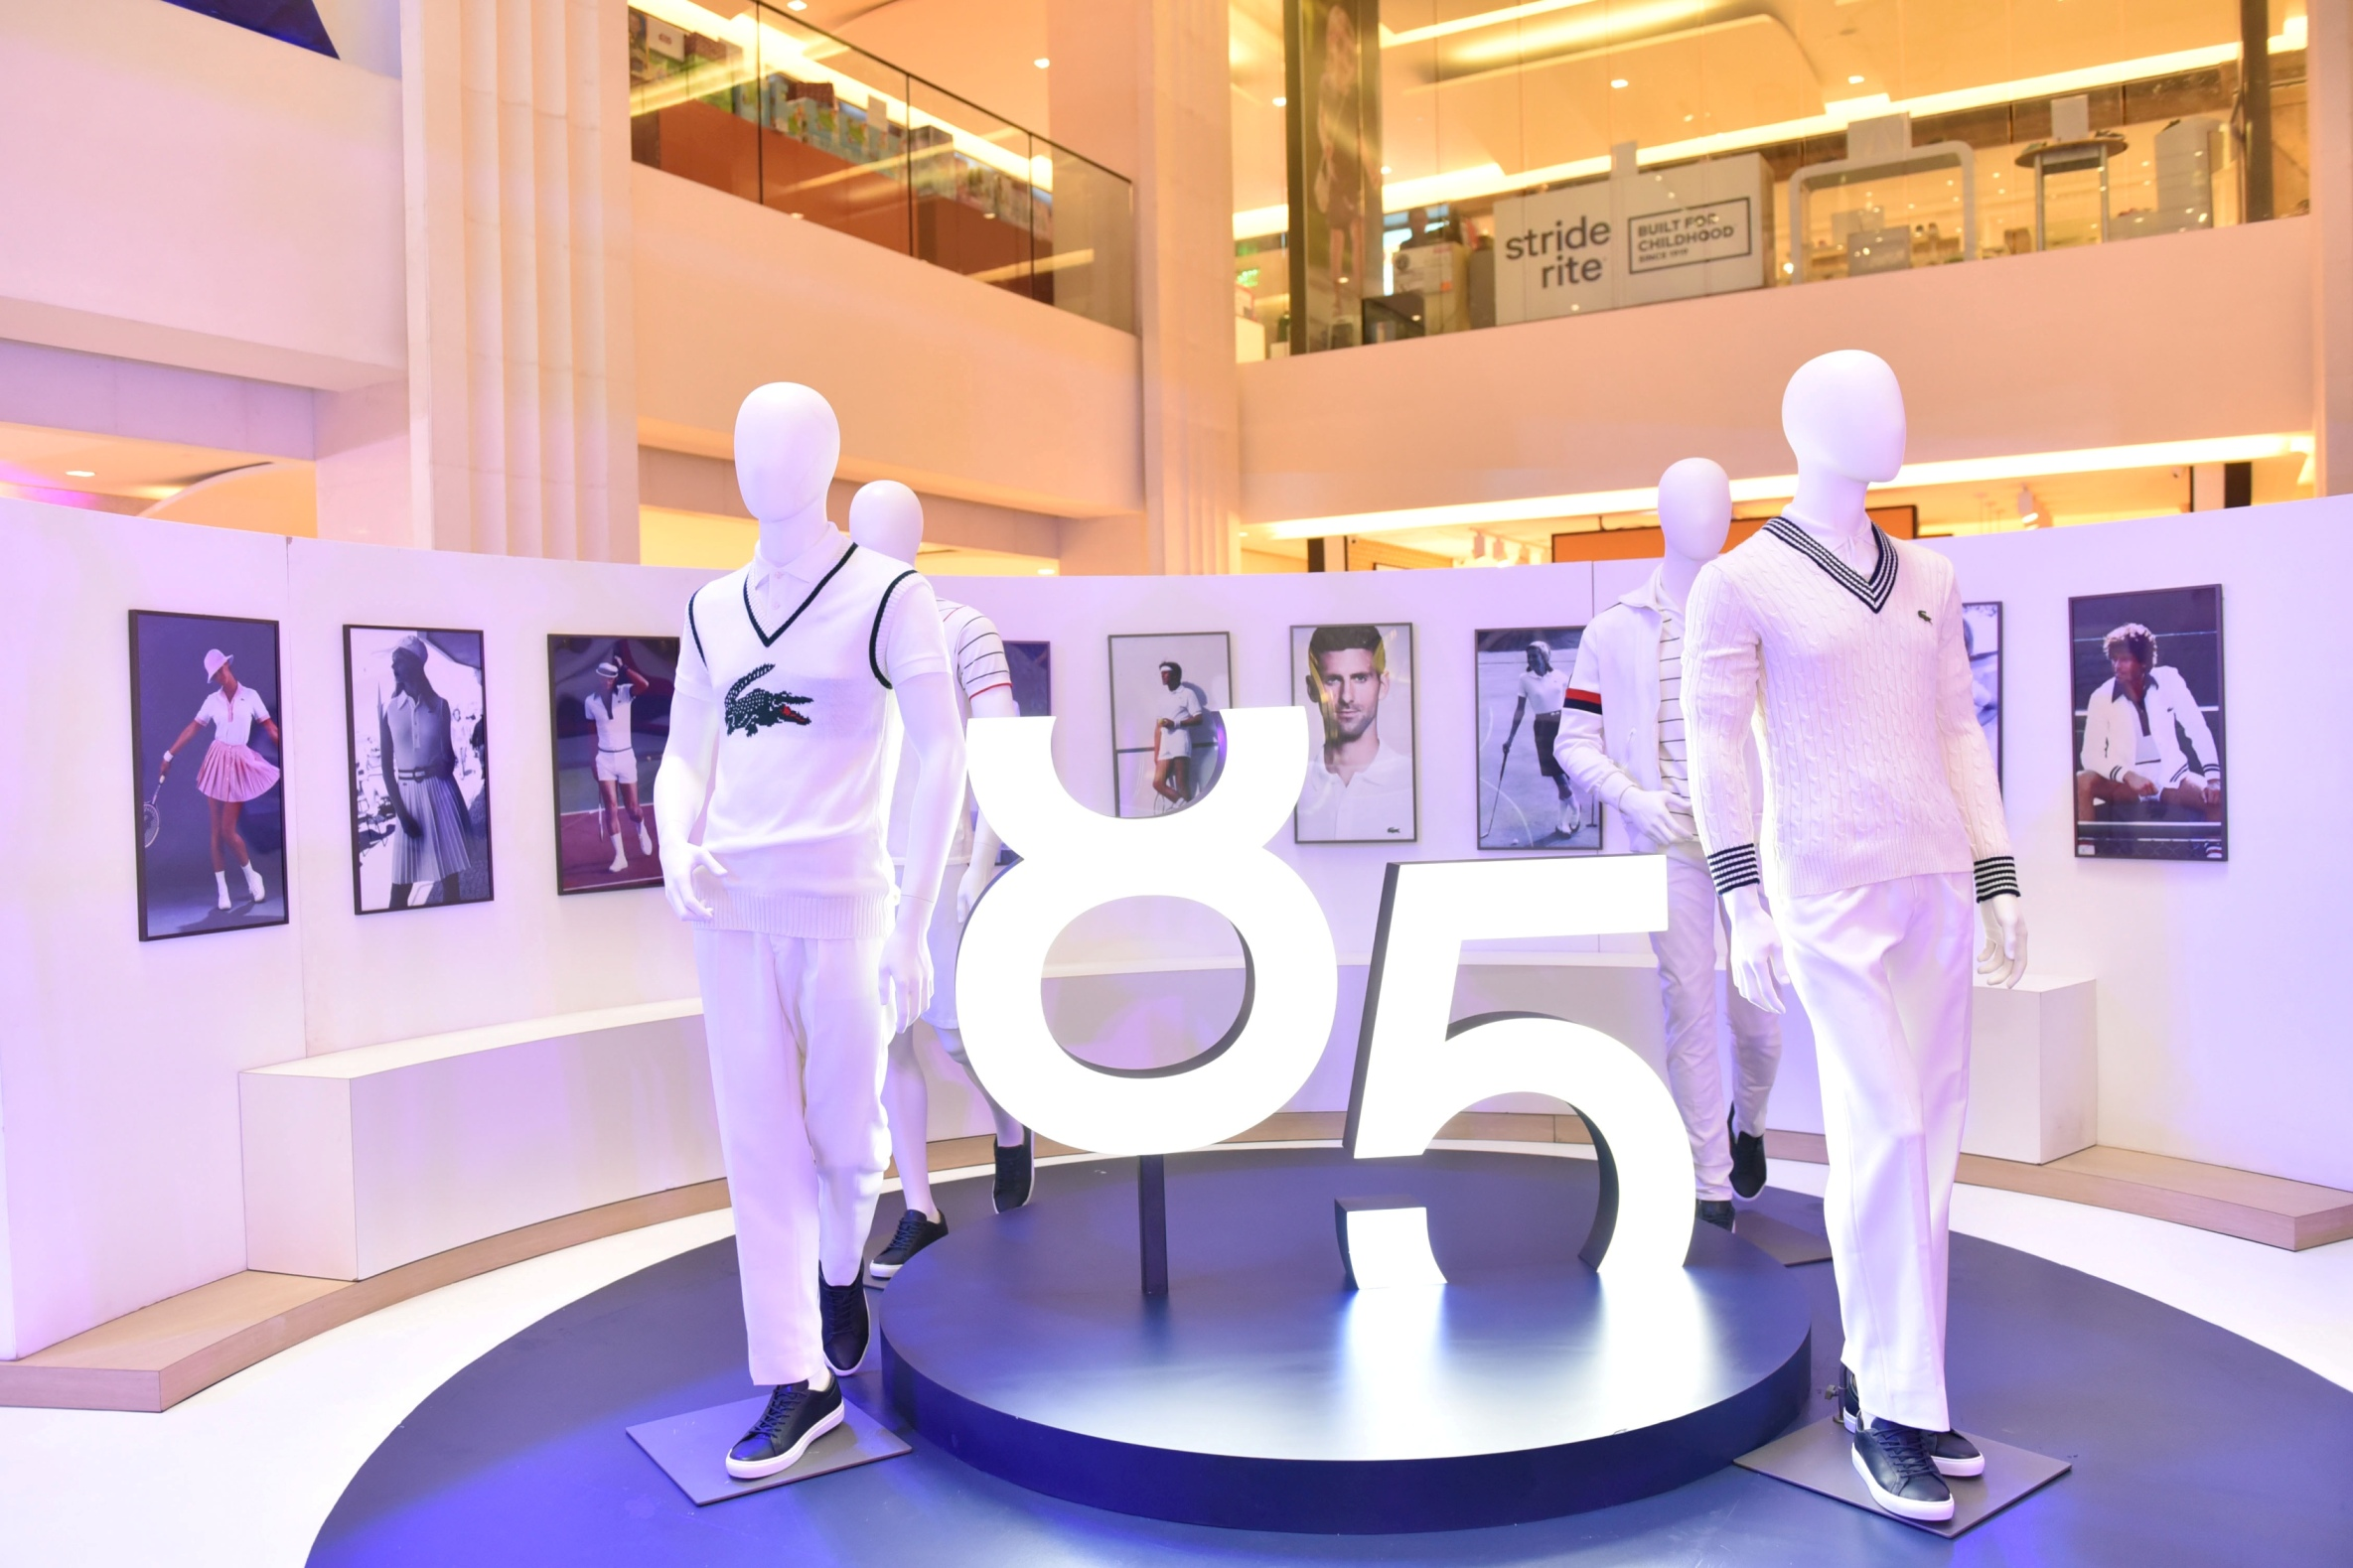 LACOSTE has created an exclusive experience to celebrate its 85th anniversary, through a pop-up exhibition in Central Square, which showcased the 85th anniversary capsule collection, the story of René Lacoste, and the evolution of the famous L.12.12 polo shirt through eight decades